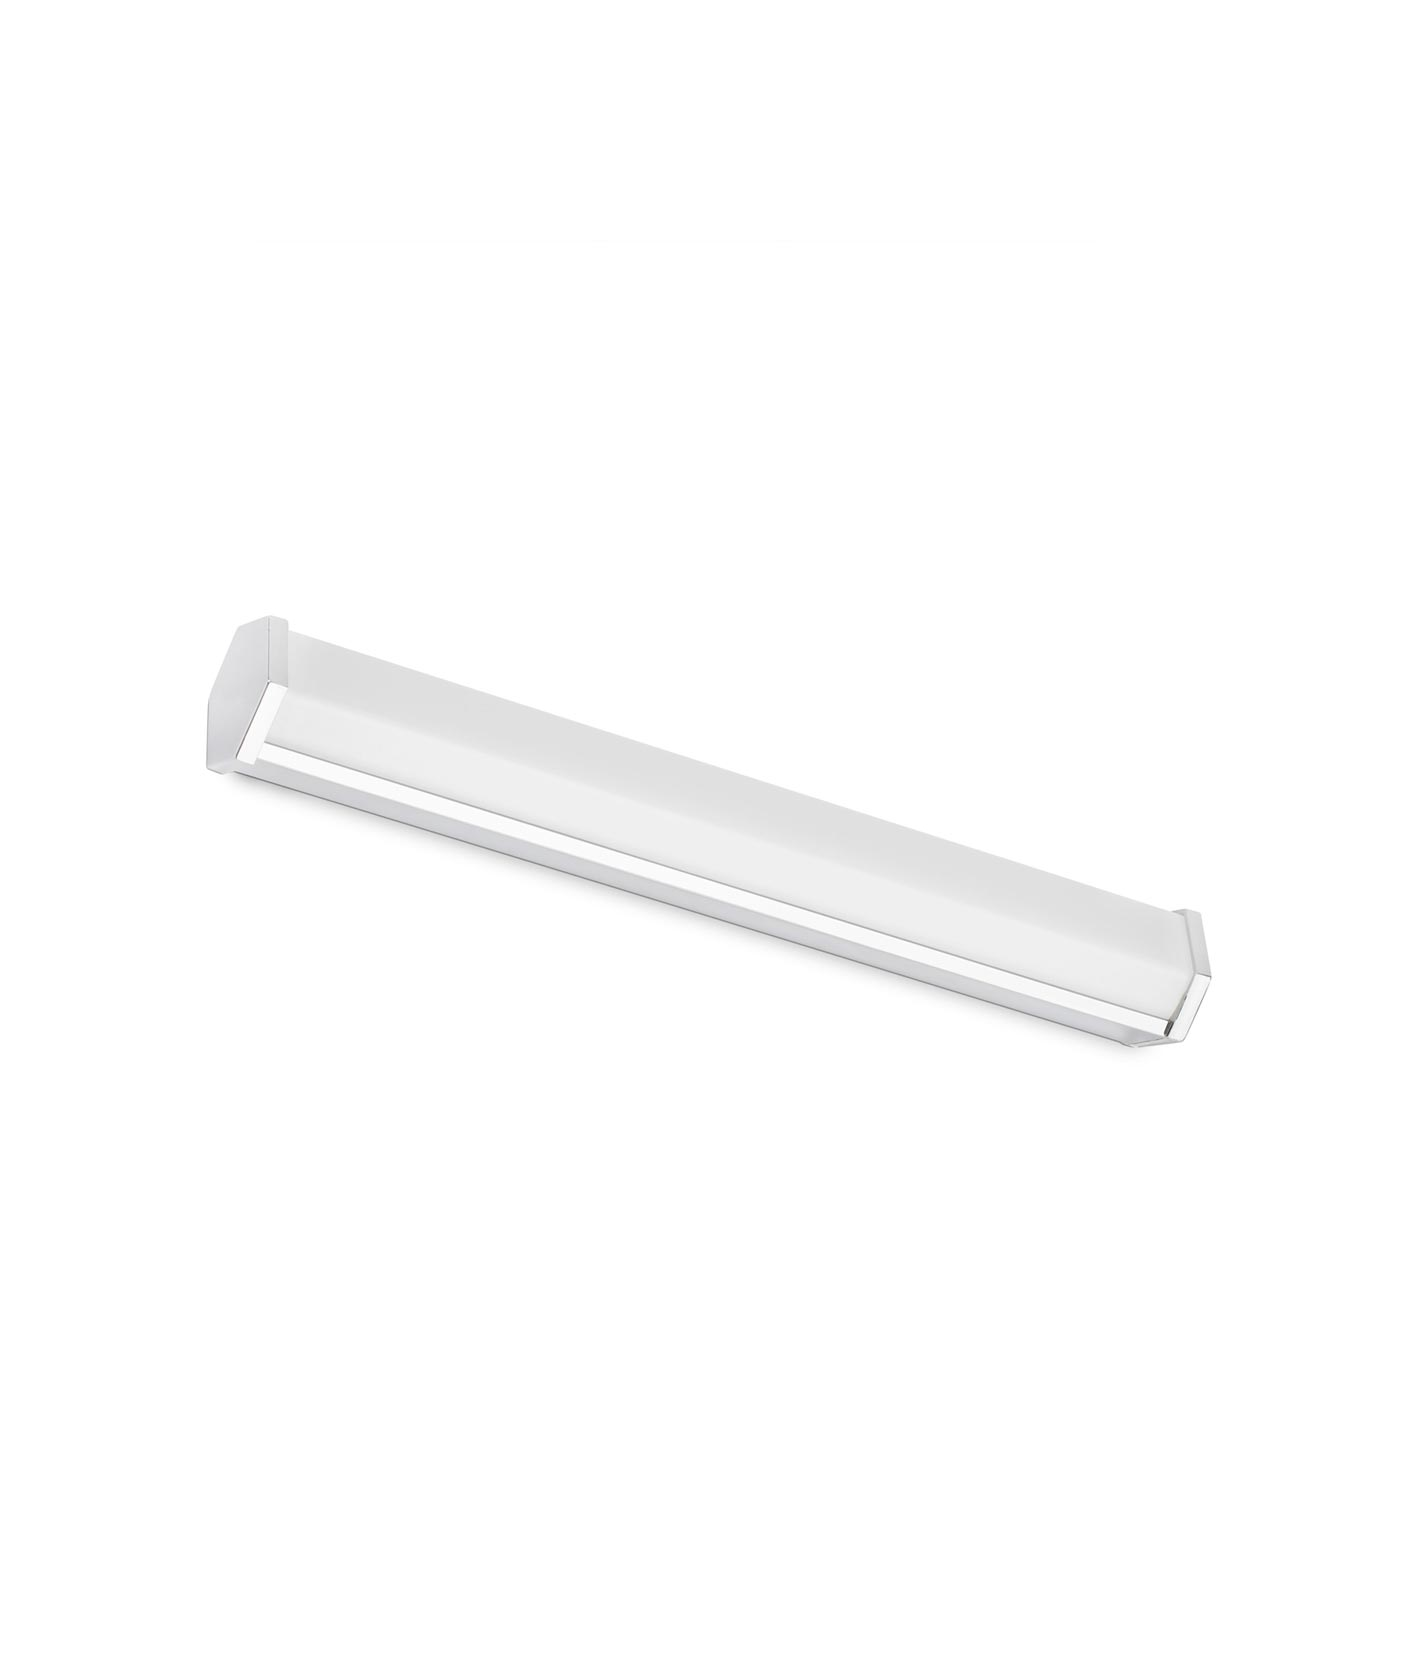 Aplique Baño Lámpara De Baño Aplique Luz Natural 6w Edge Led